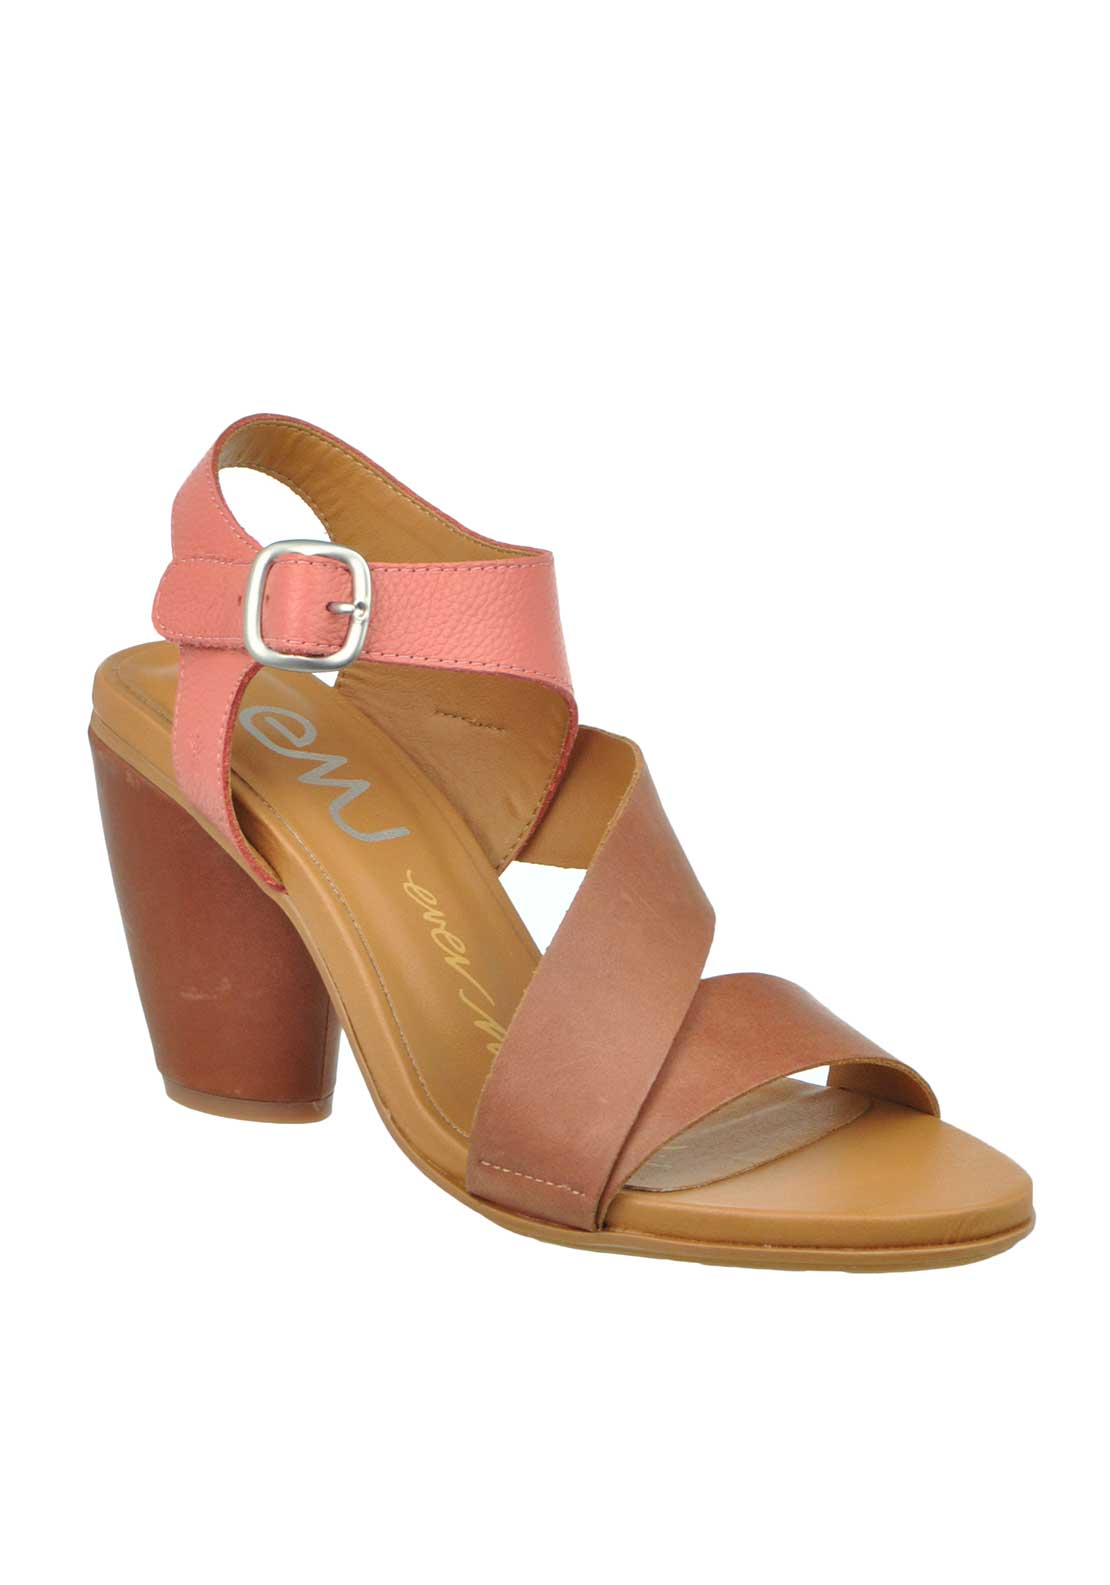 EMU Australia Dawn Leather Coloured Strap Heeled Sandals, Hazelnut